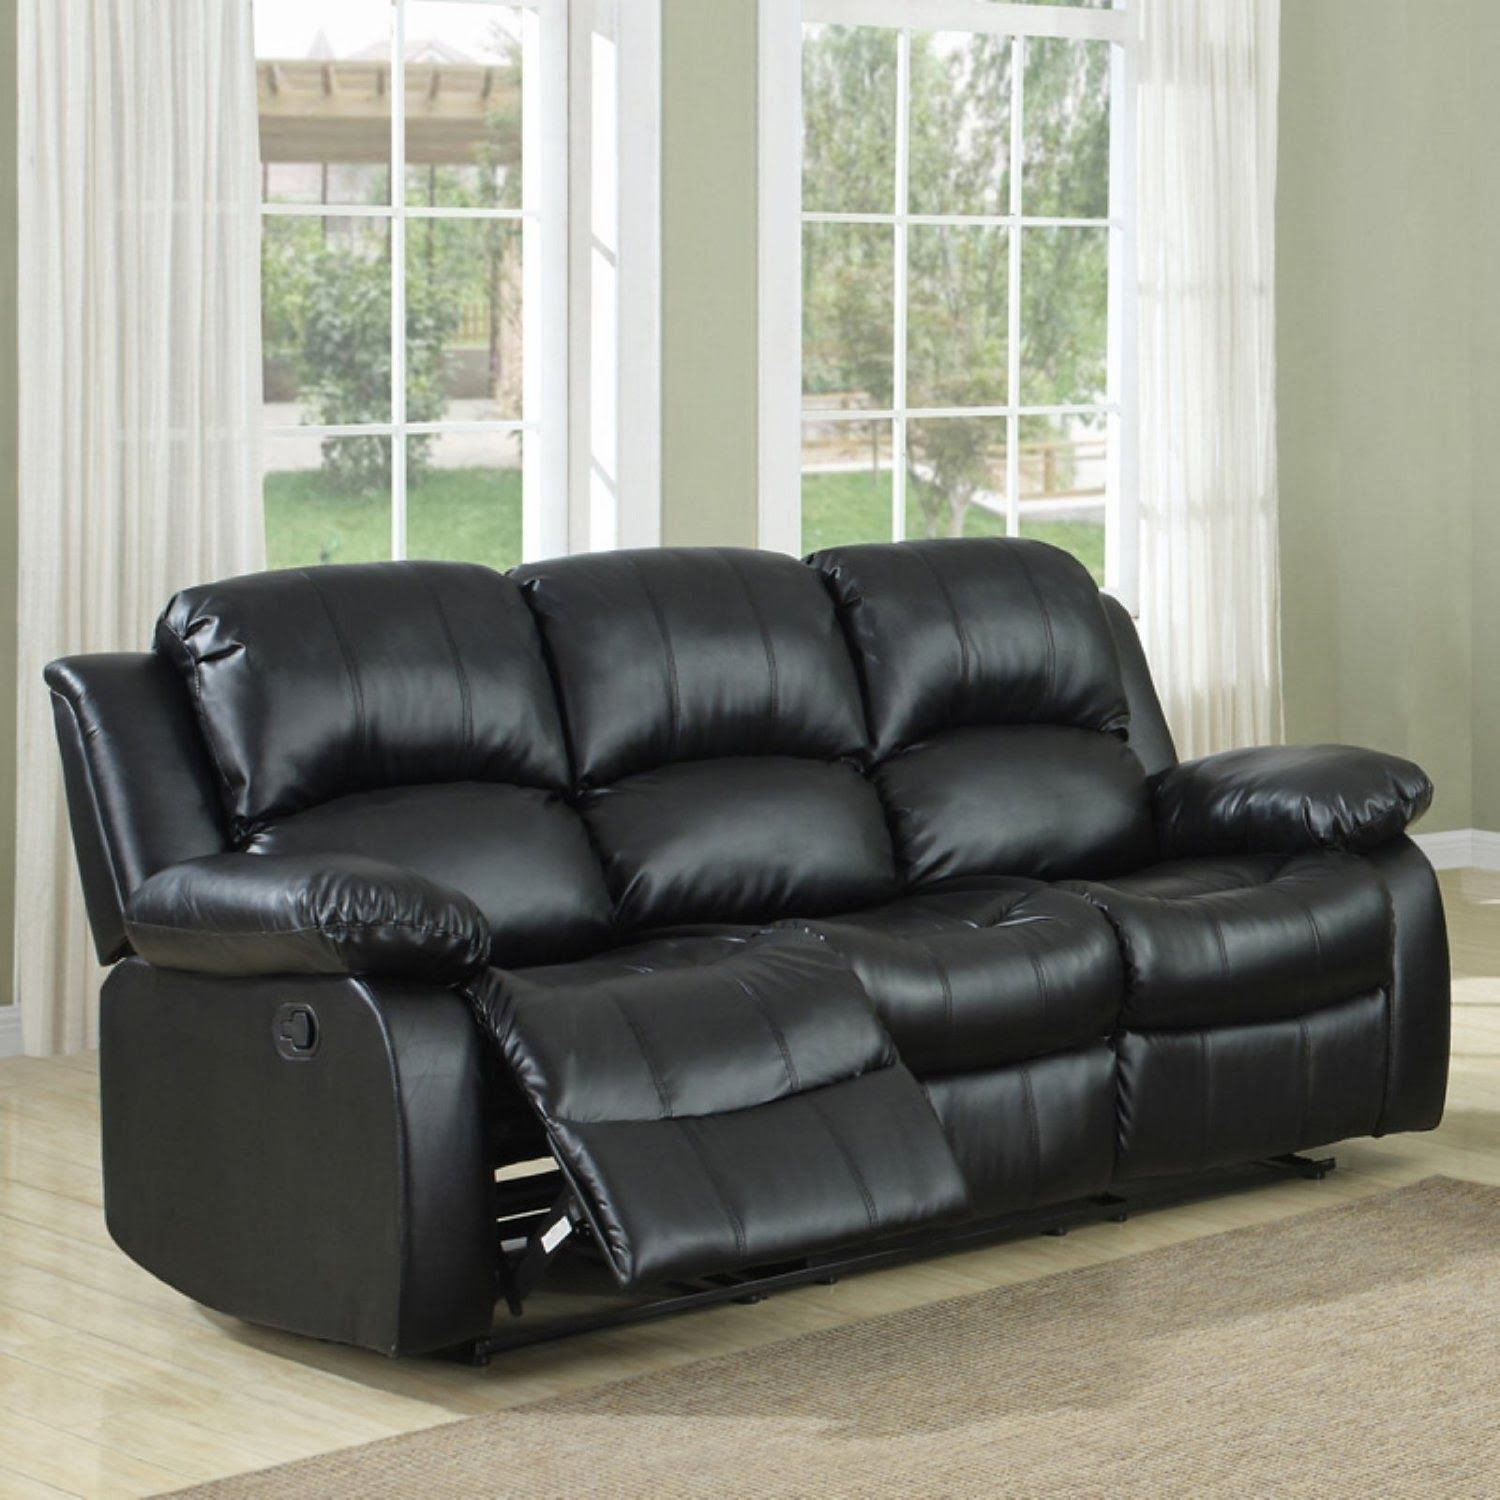 Vancouver Furniture Store Sofas Couches Sectional Sofa With Recliner Reclining Sofa Black Leather Sofas